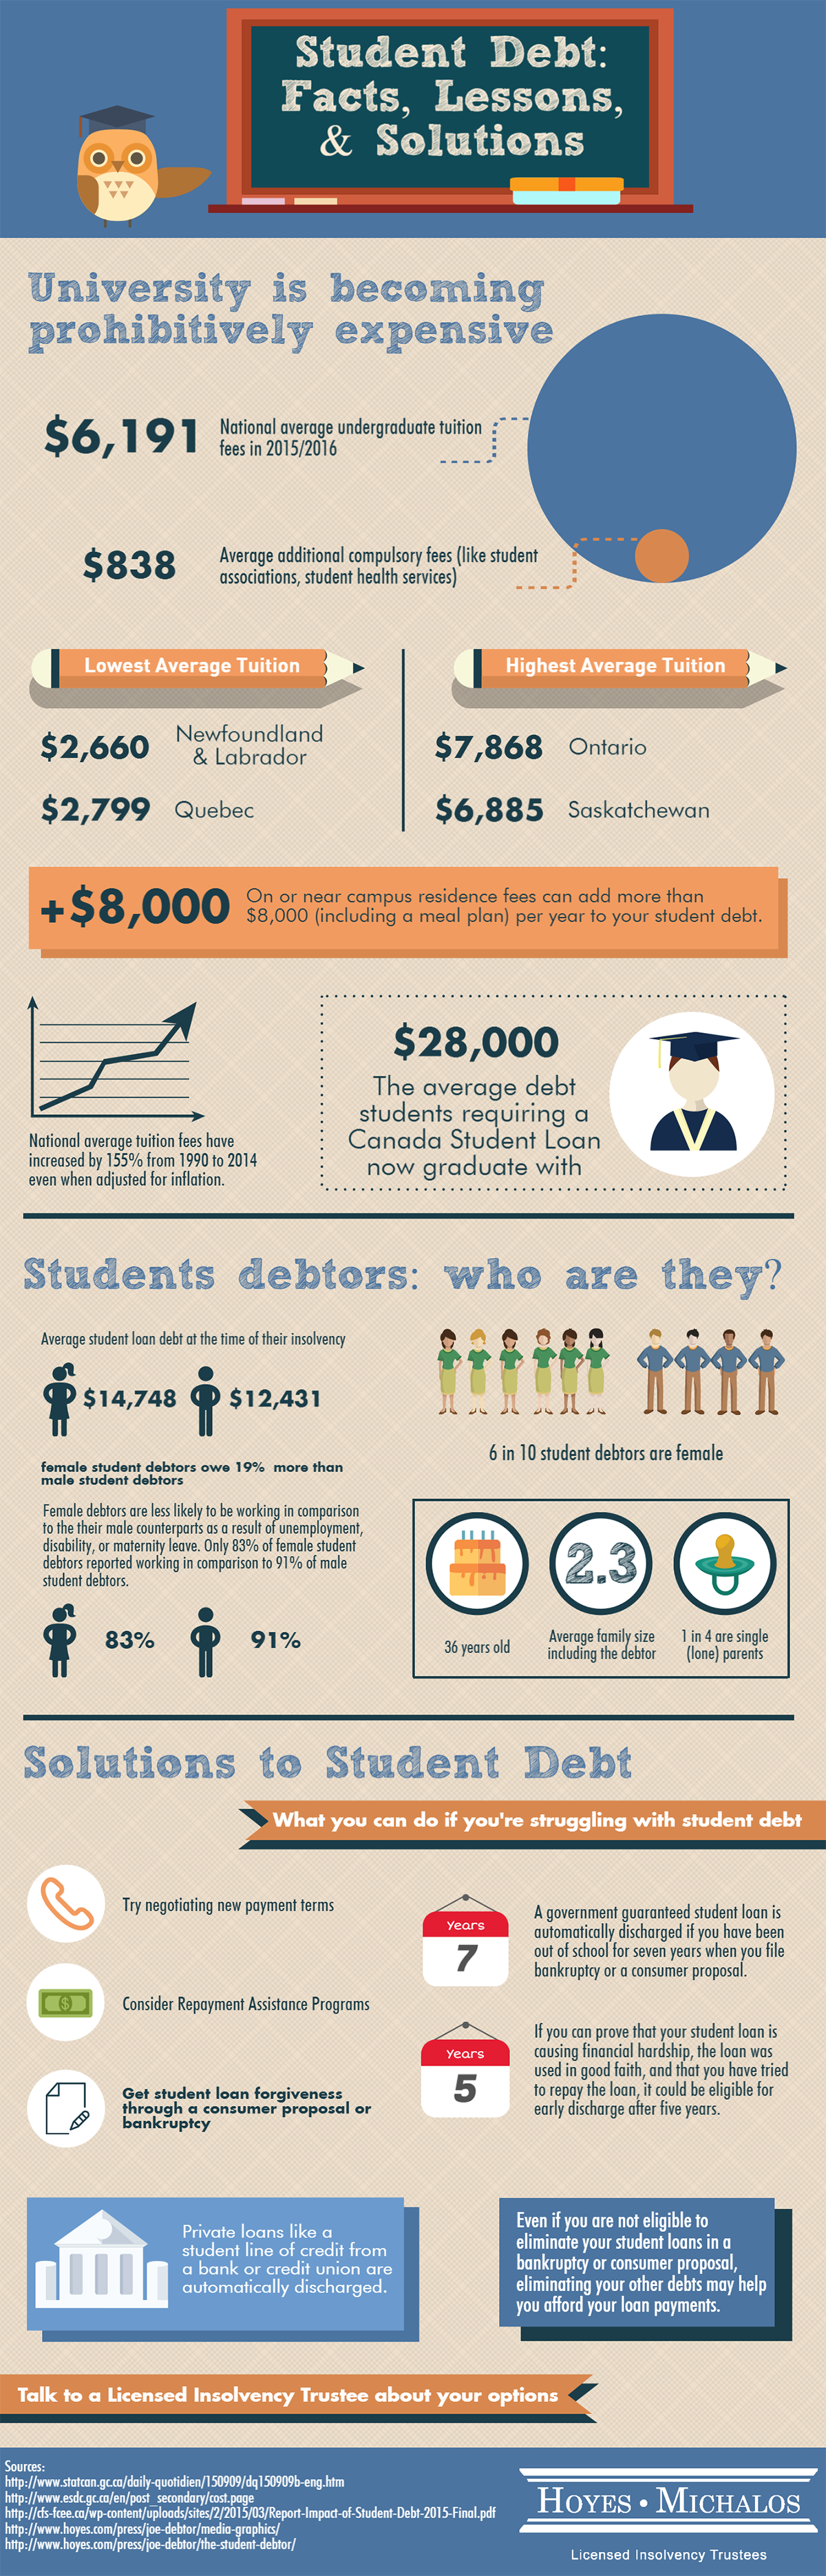 Student Debt Infographic